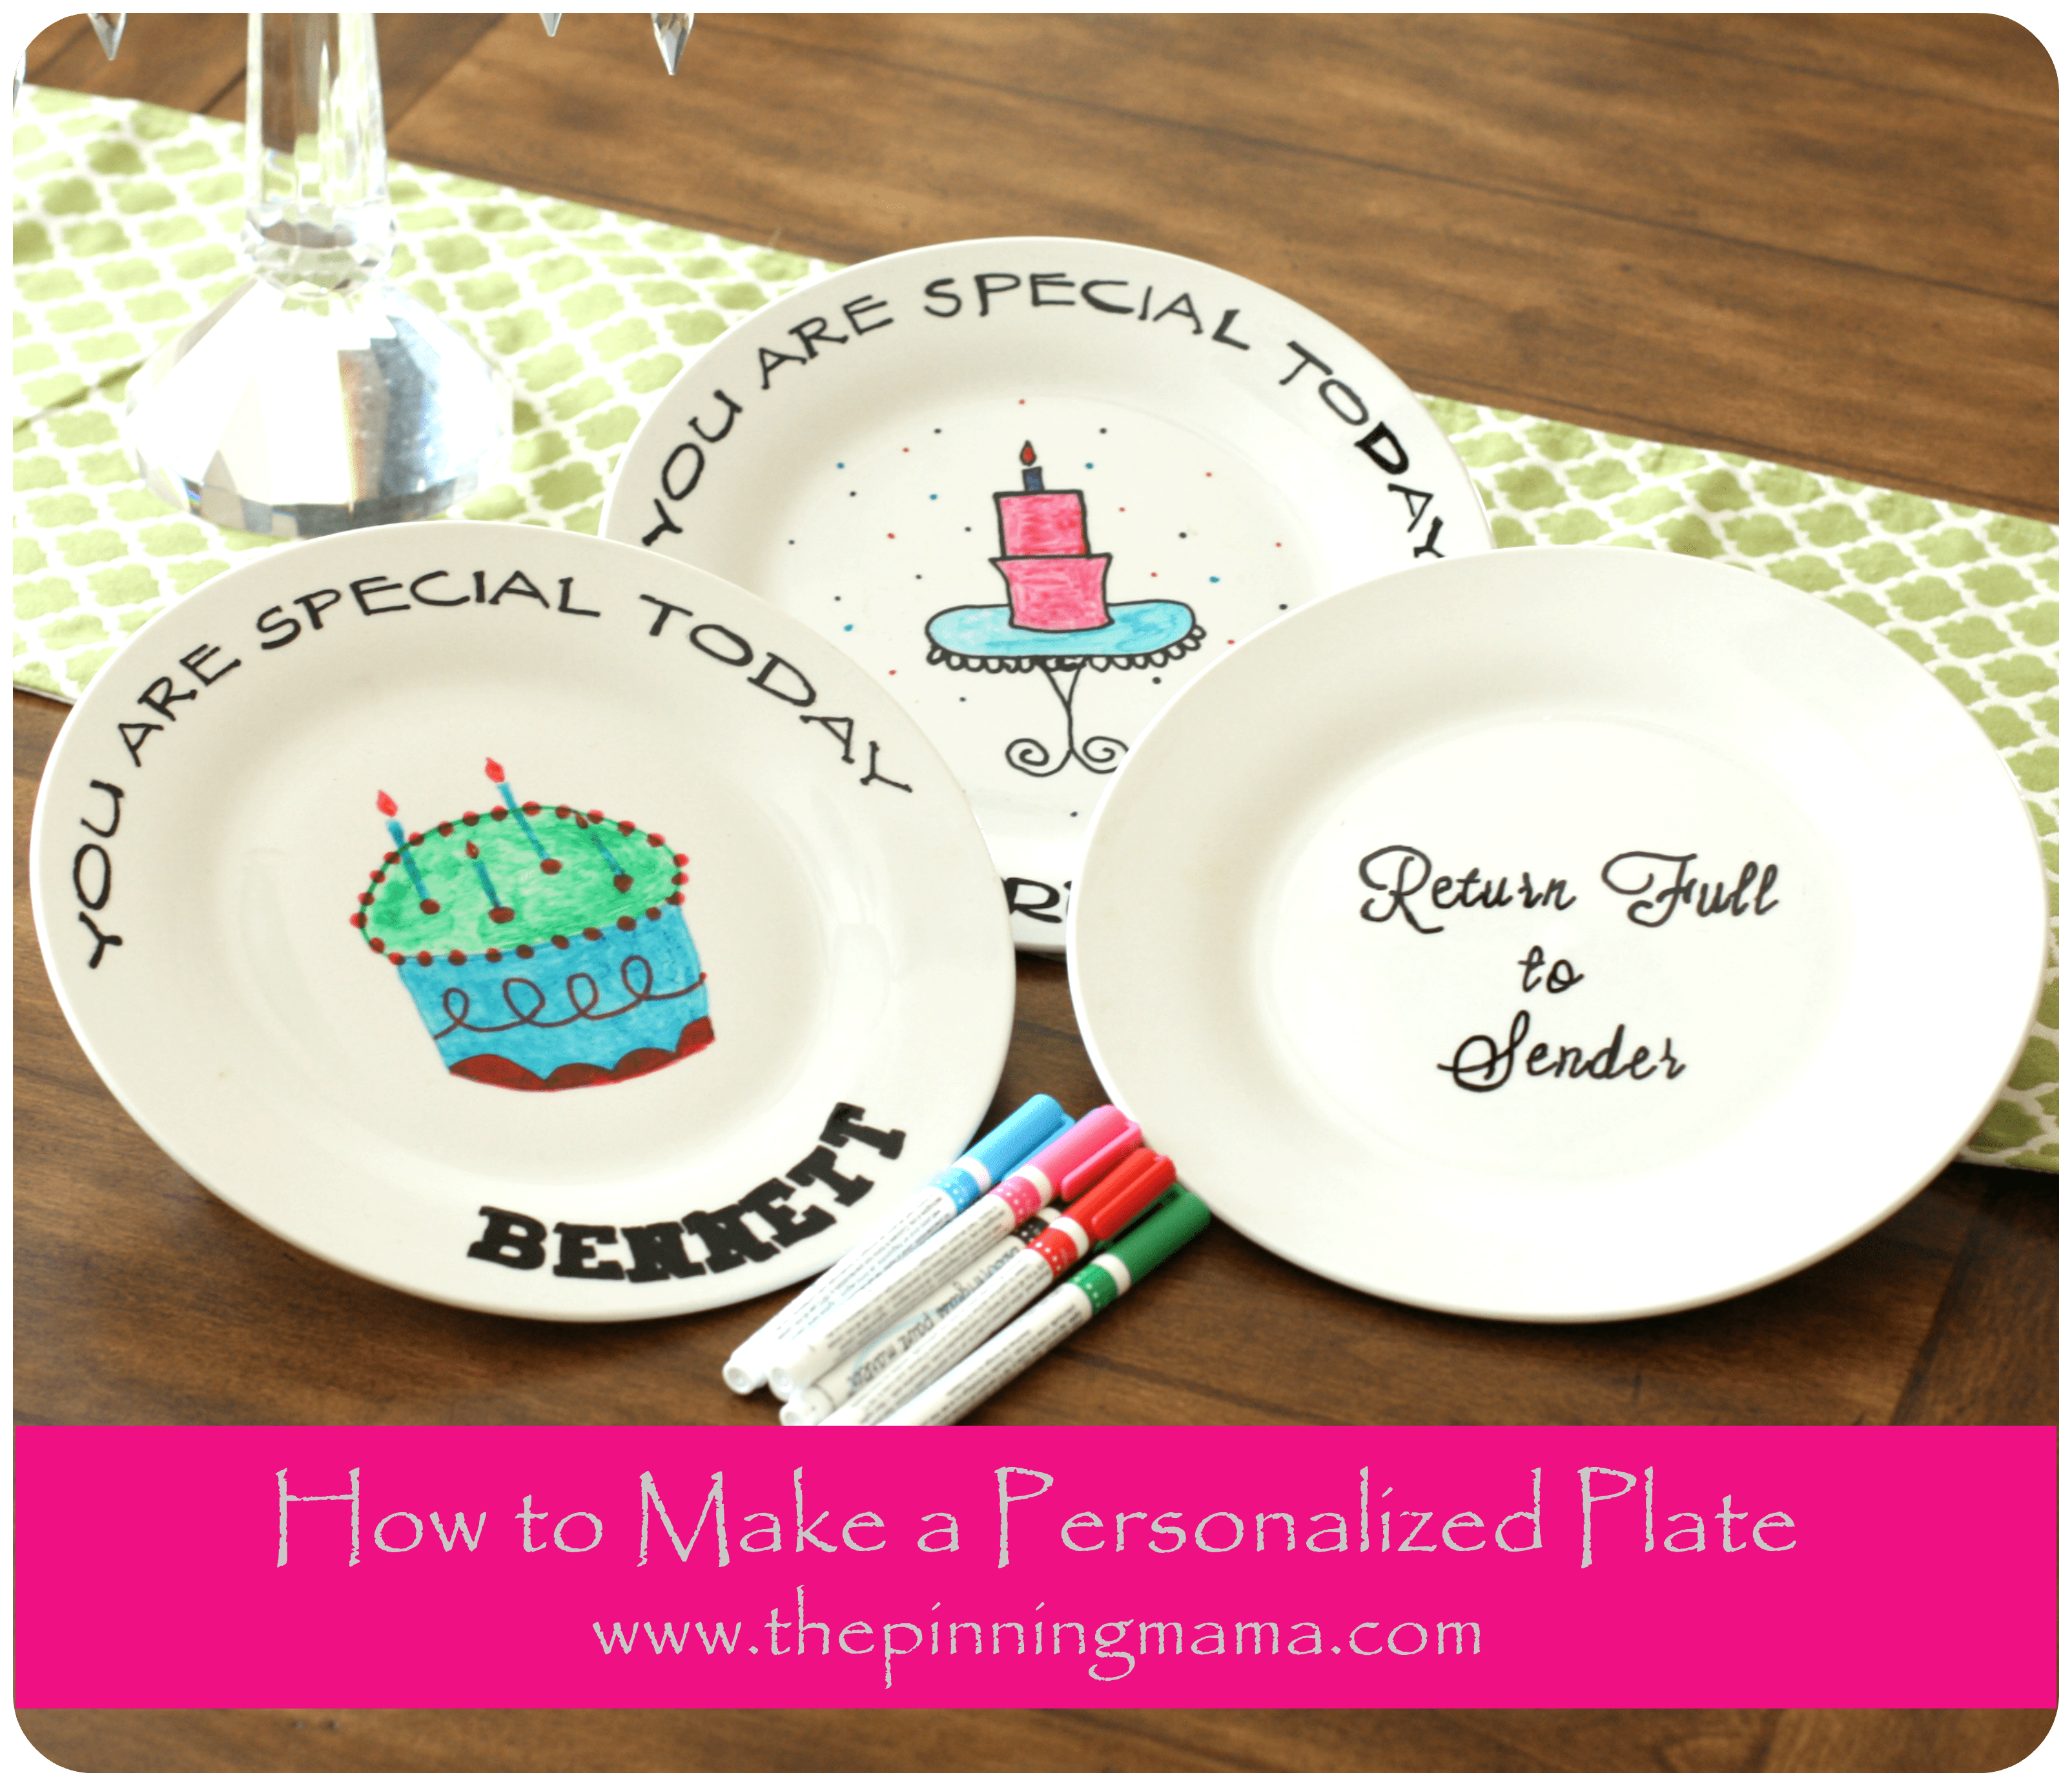 Diy How To Make A Personalized Plate The Pinning Mama